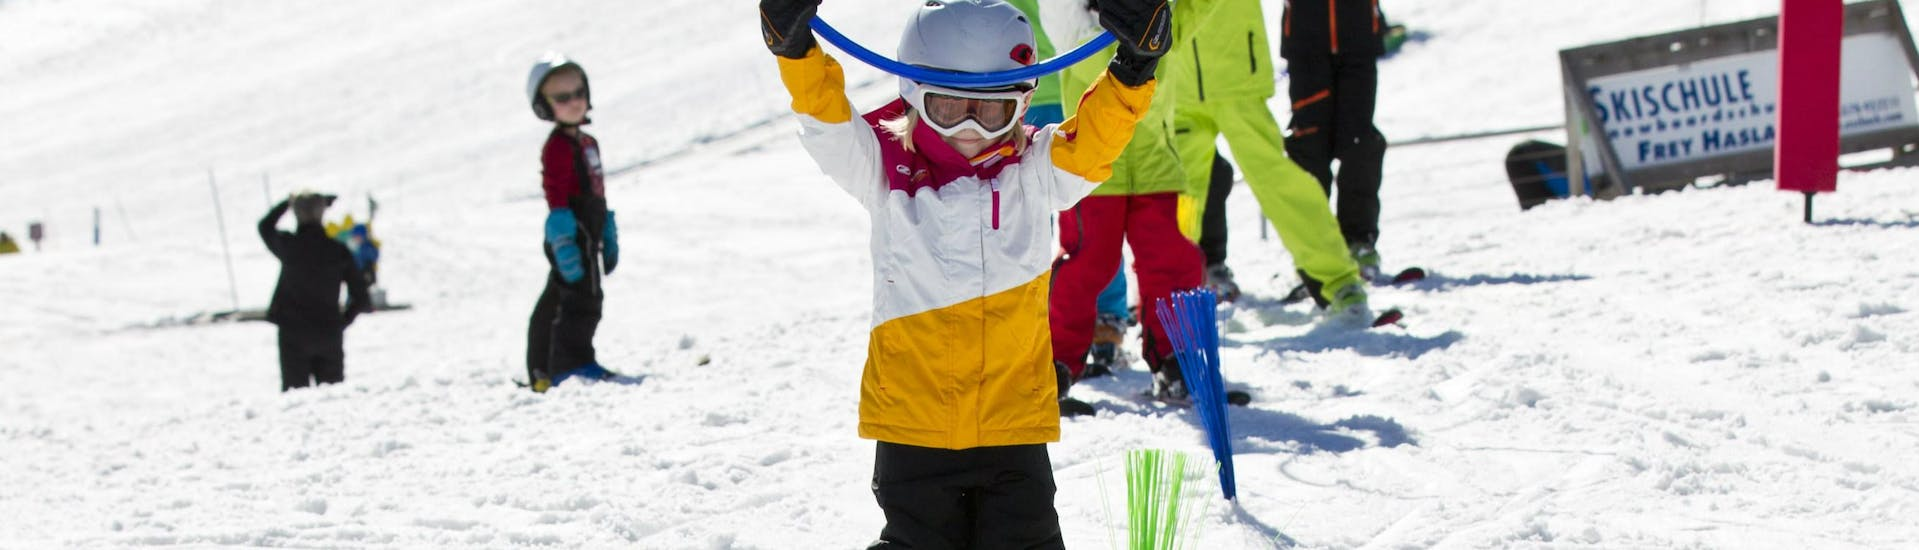 Ski Lessons for Kids (from 4 years) - All Levels